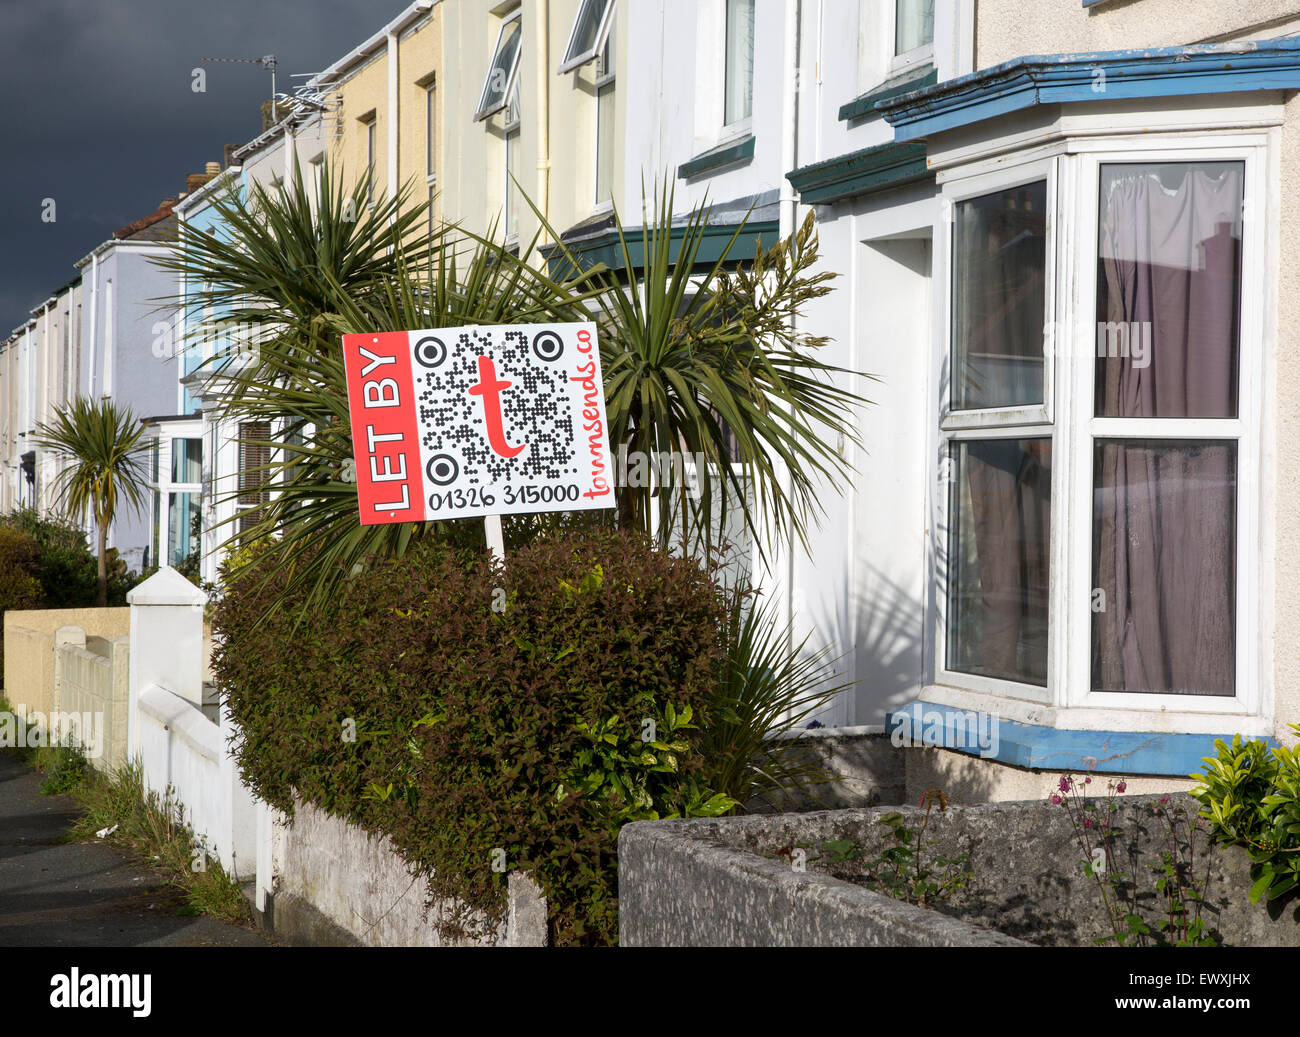 Terraced housing with letting signs  in Falmouth, Cornwall, England, UK with storm clouds overhead - Stock Image